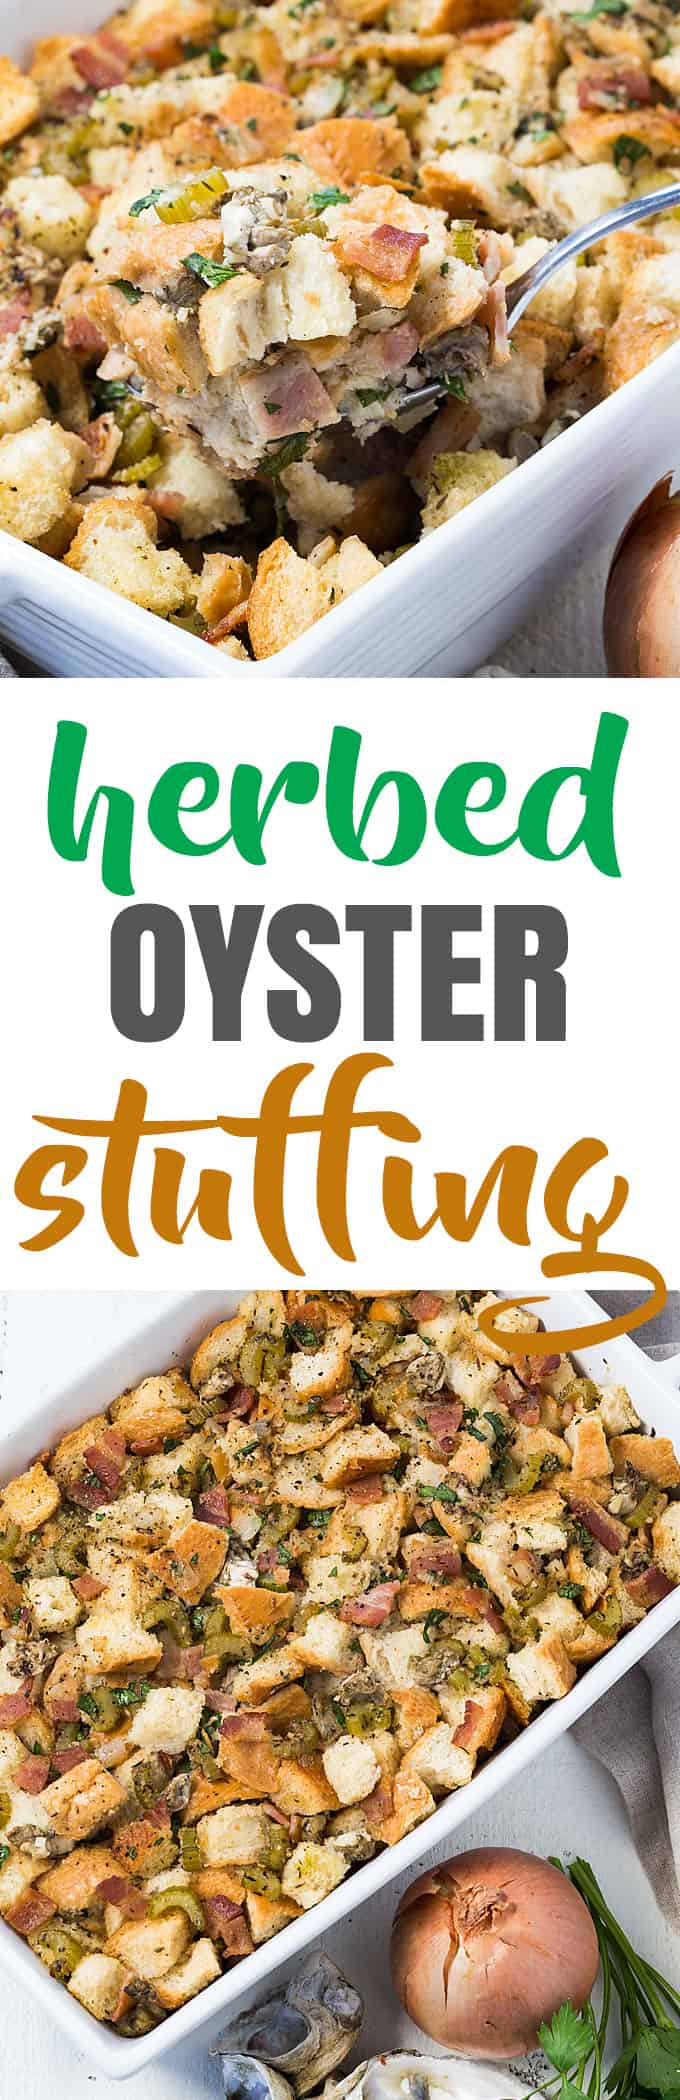 Oyster Stuffing - A hearty Thanksgiving side dish full of herbs, veggies, bacon and oysters.